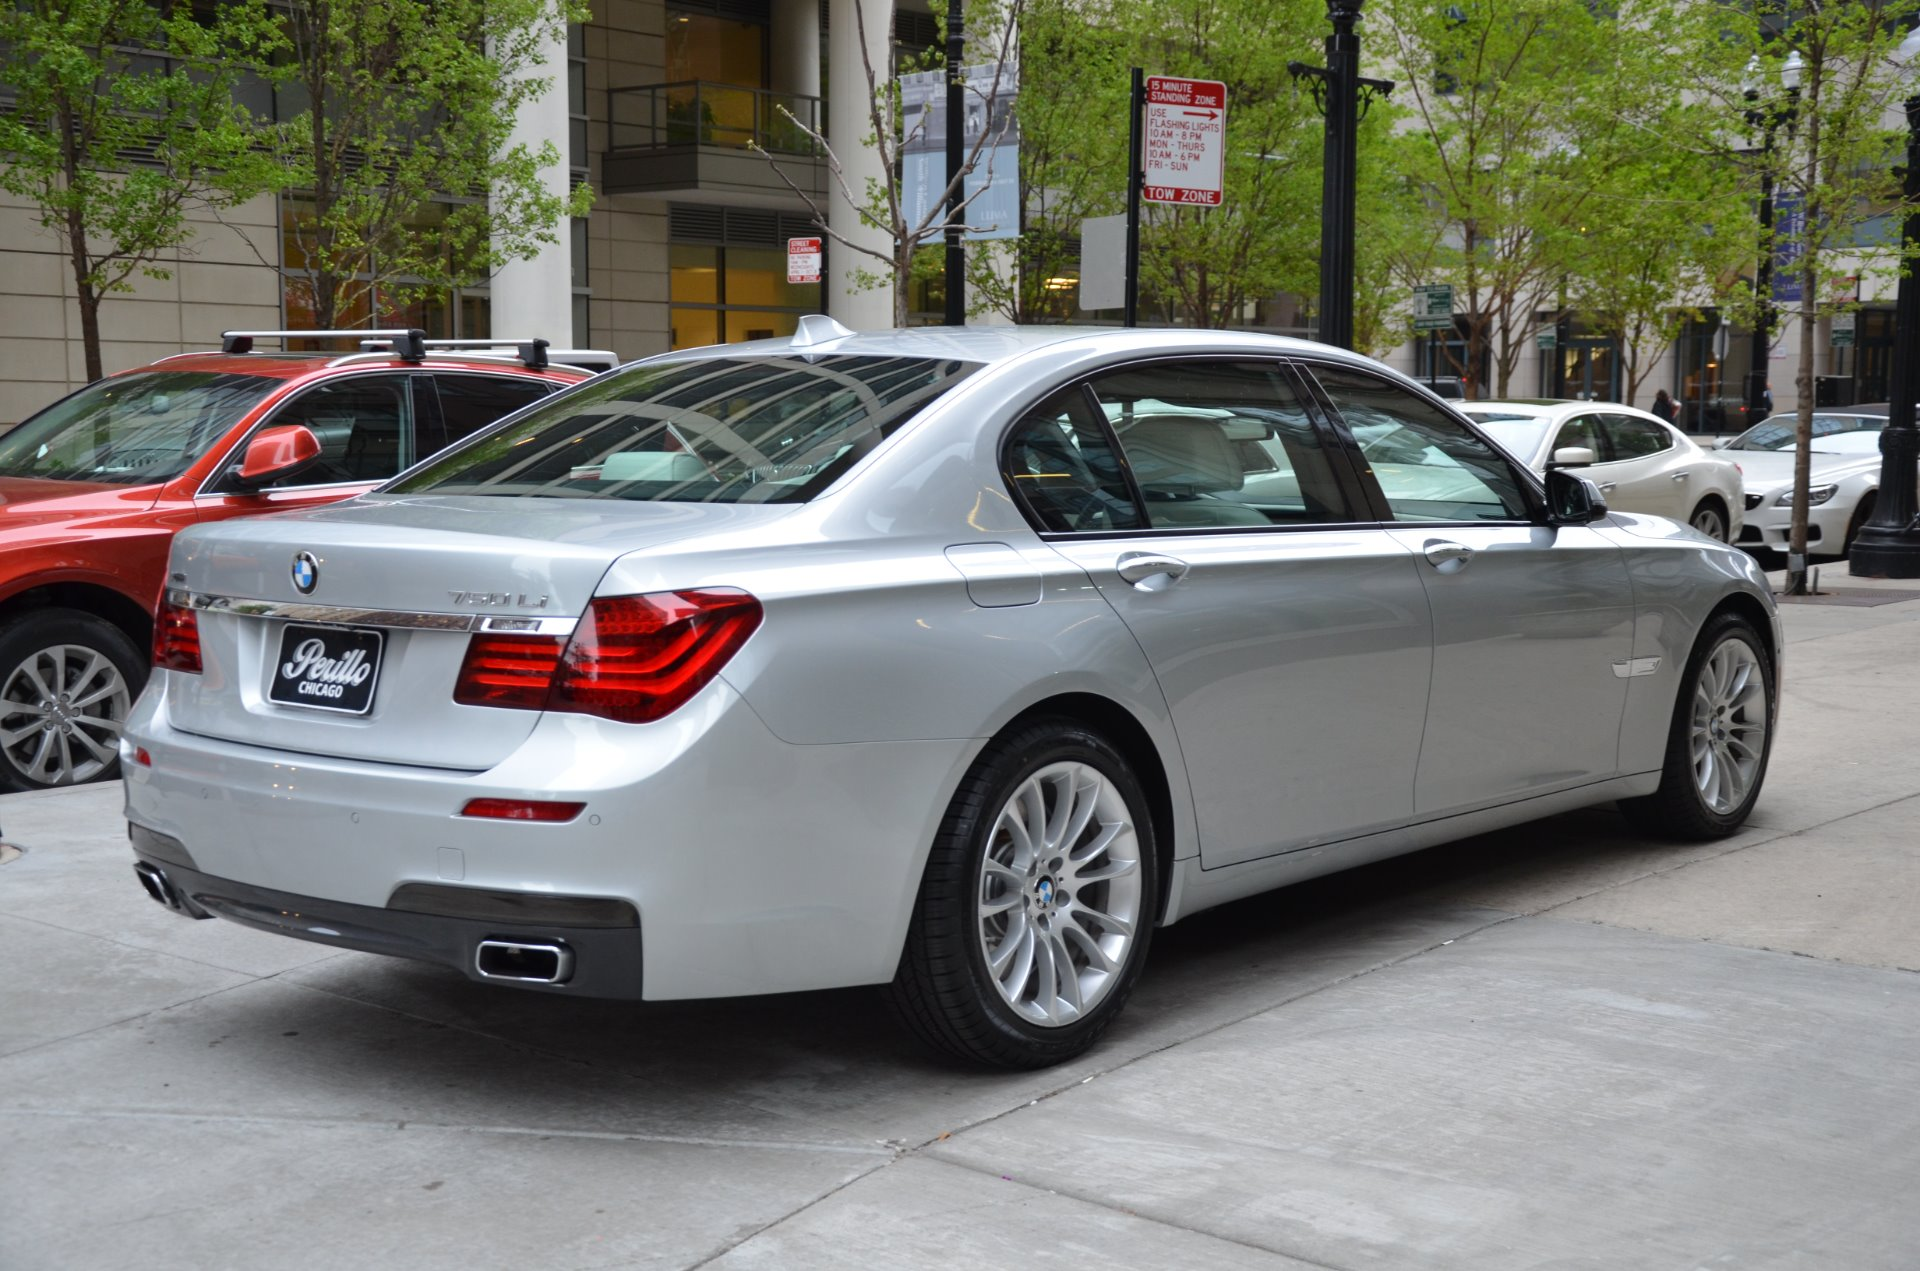 2015 BMW 7 Series 750Li xDrive Stock # 53941 for sale near Chicago